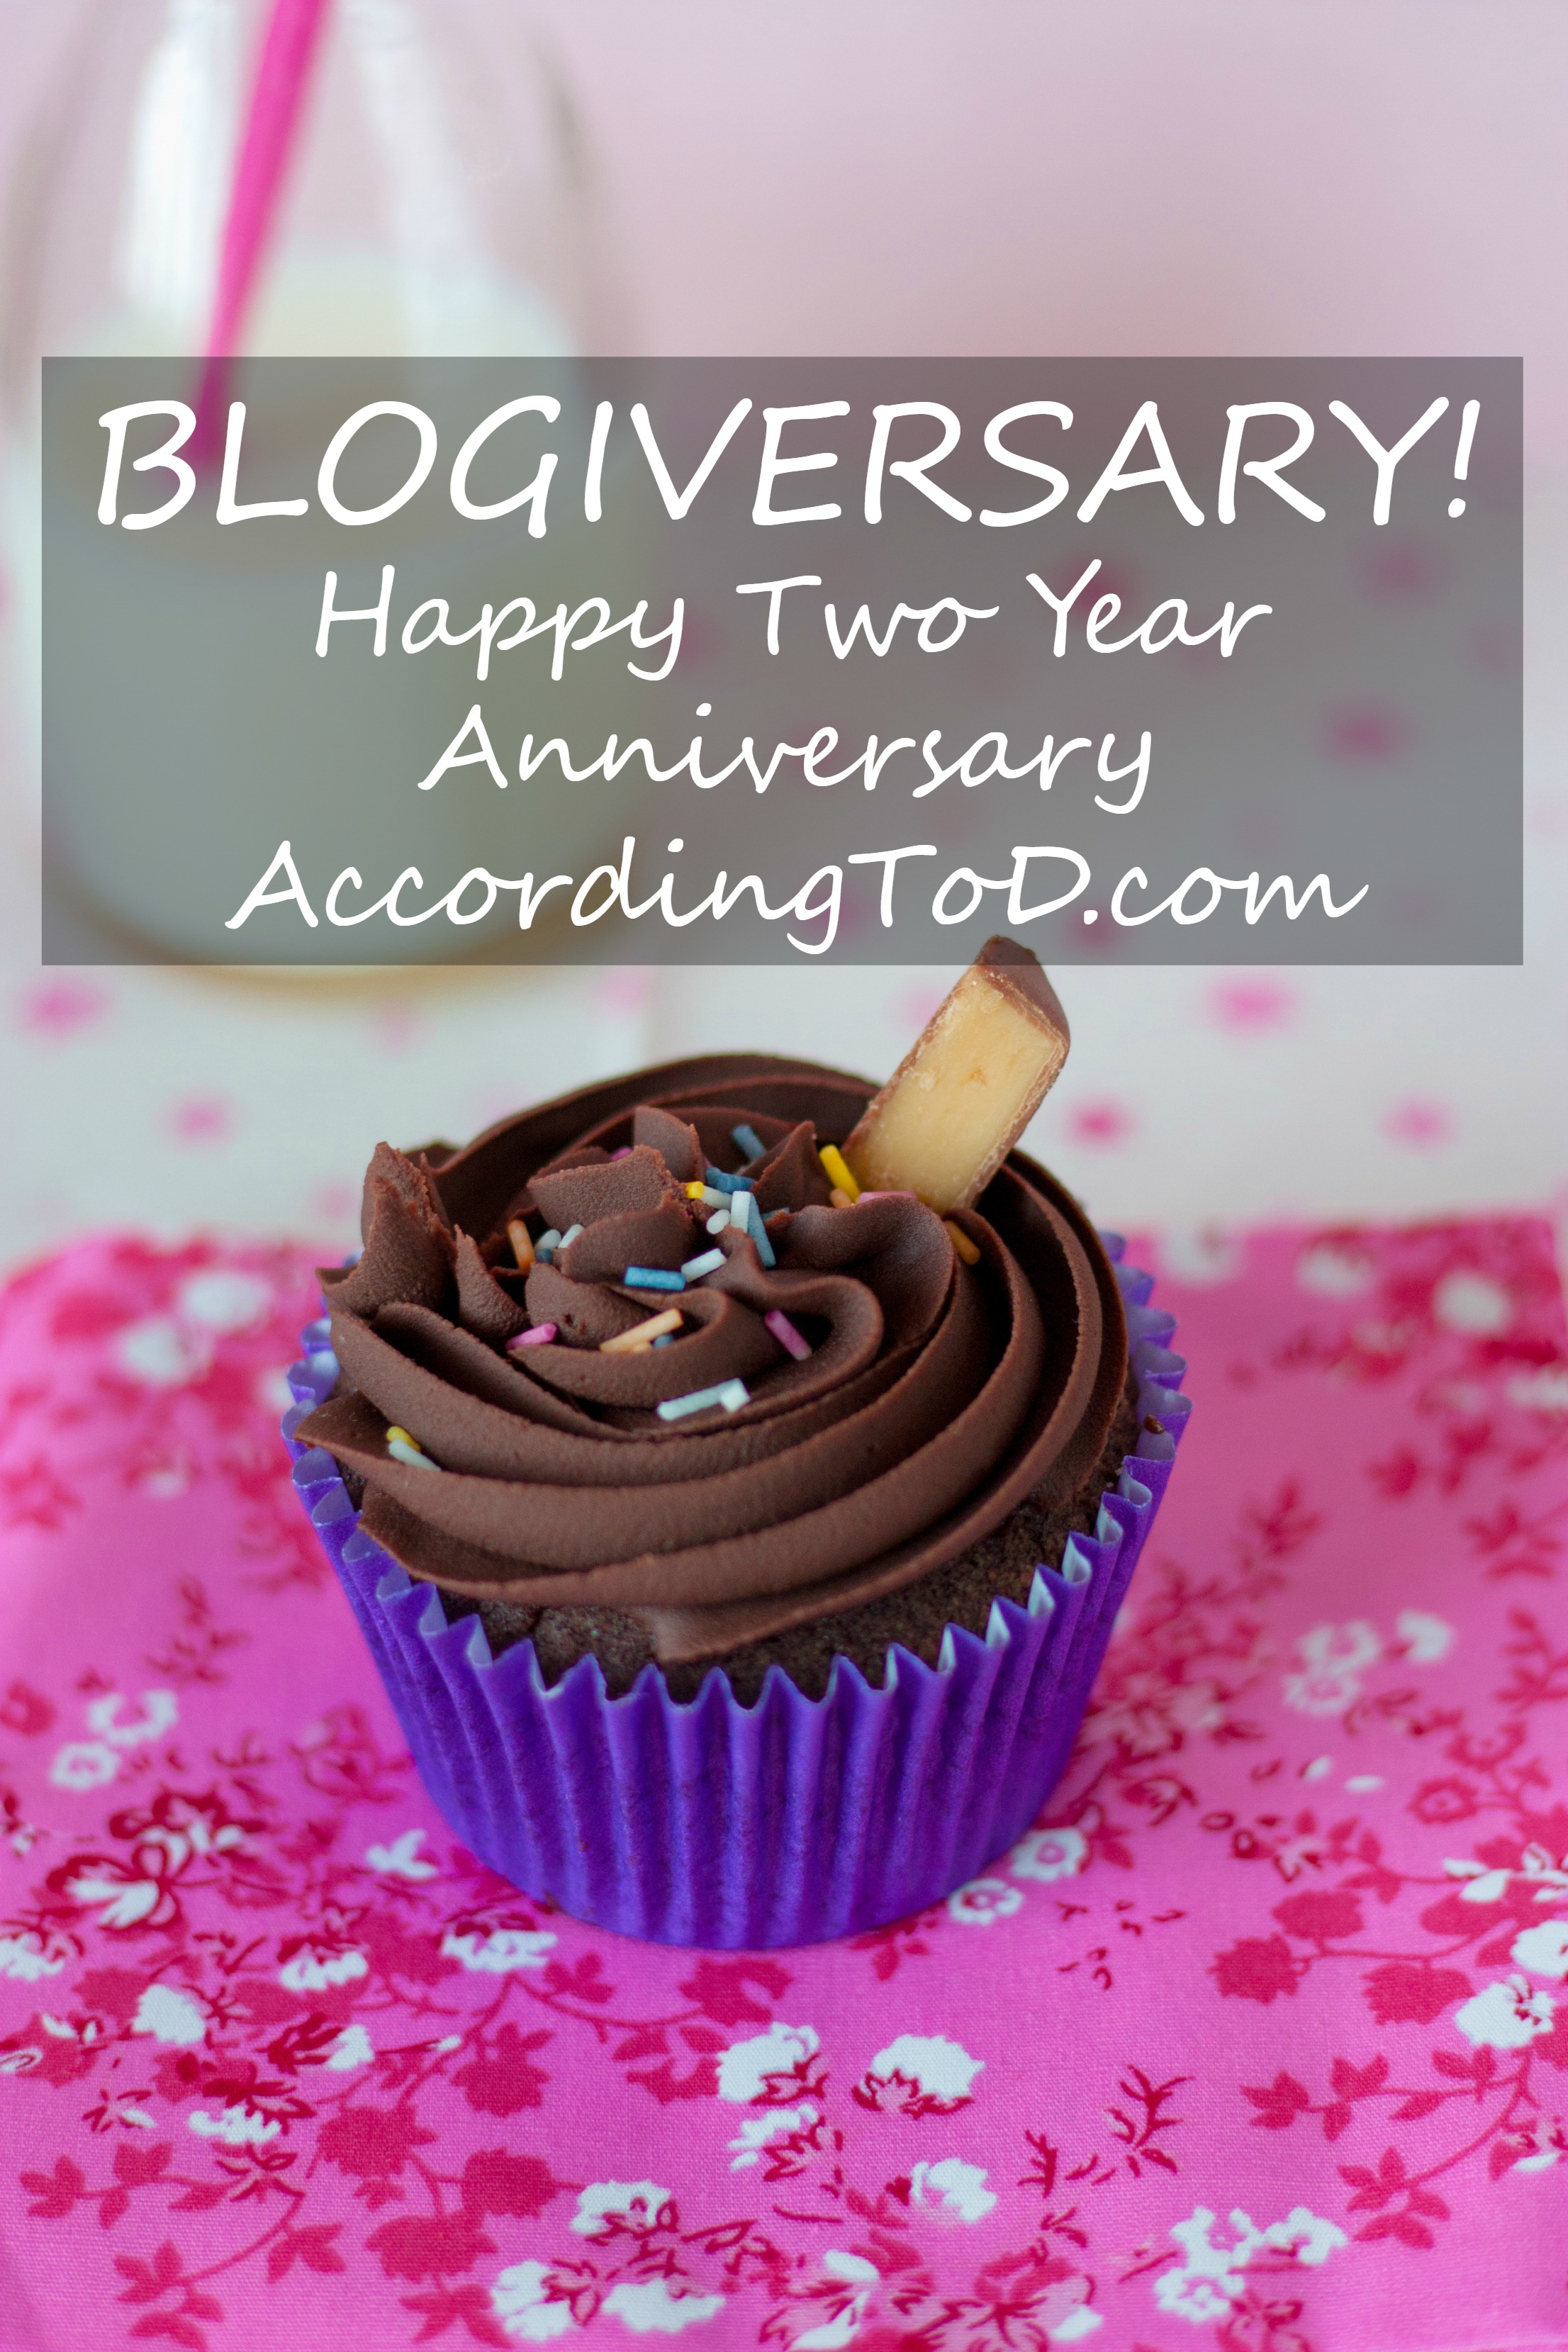 happy blogiversary.jpg